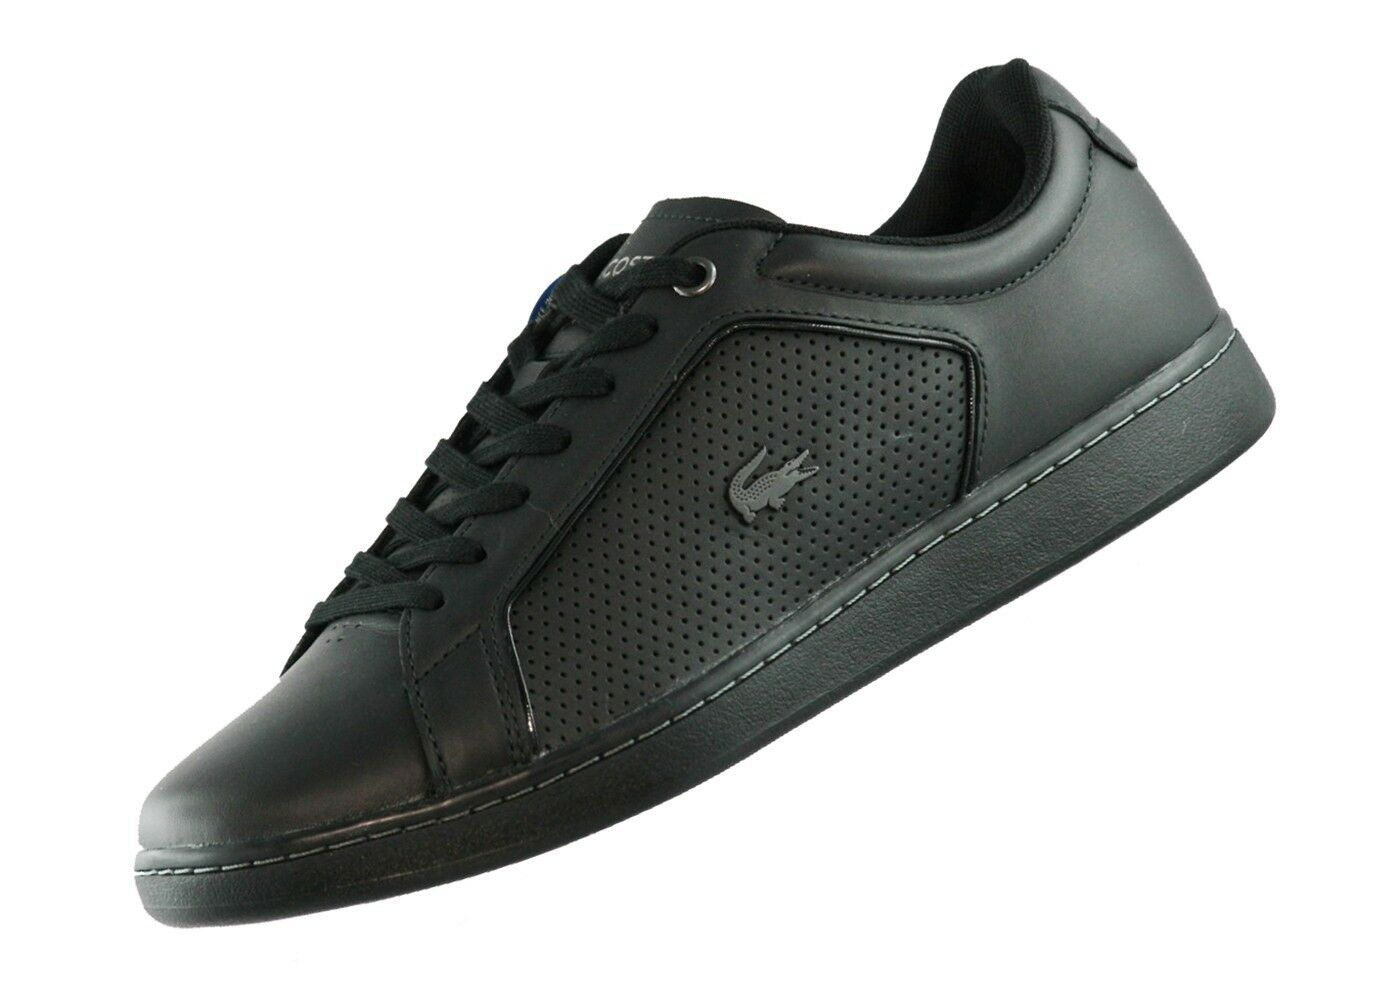 Lacoste Carnaby Carnaby Lacoste evo 317 negro 734spm006102h cortos 552a1d